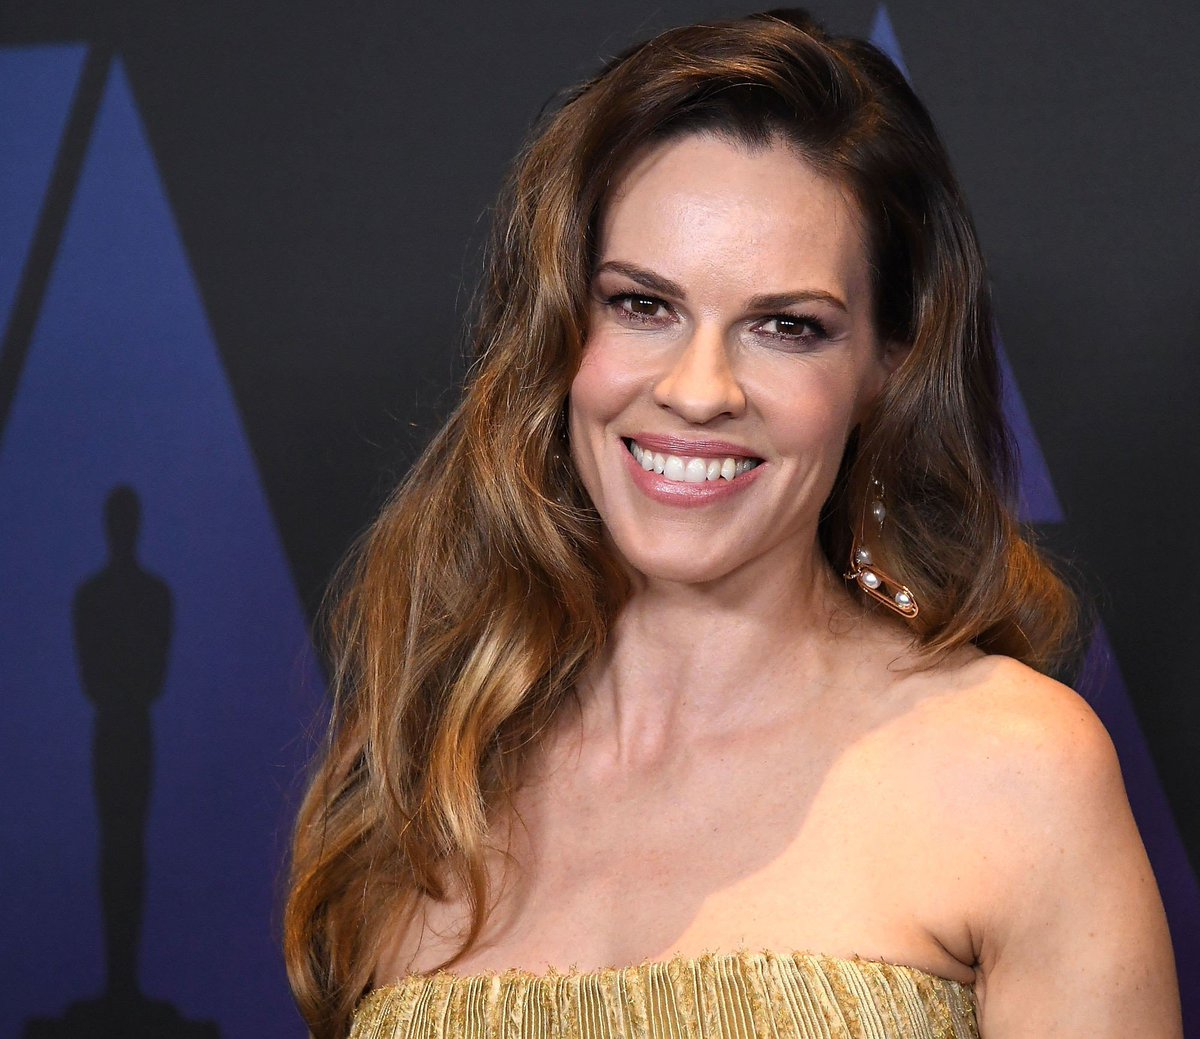 Twitter Hilary Swank nude photos 2019